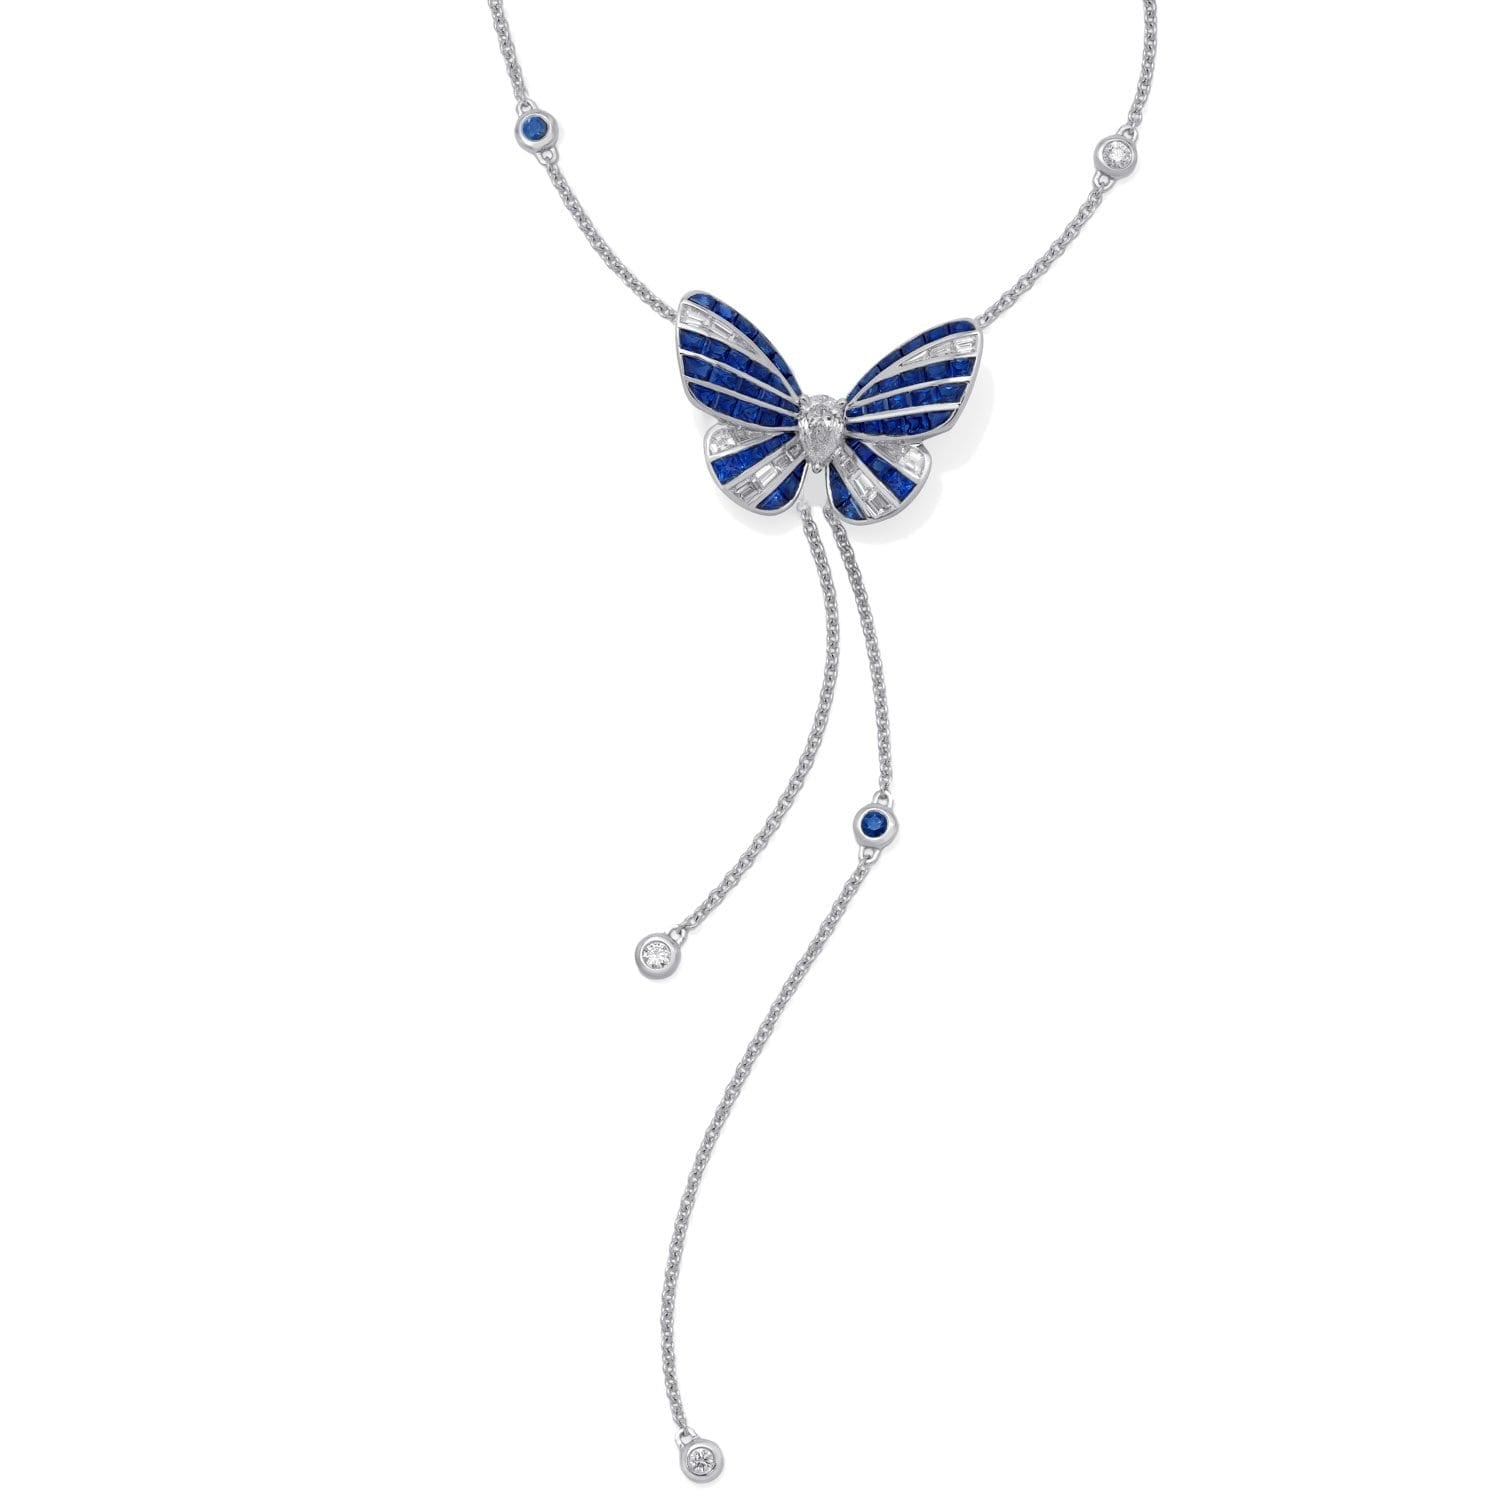 BUTTERFLY LOVERS NECKLACE - STENZHORN JEWELLERY